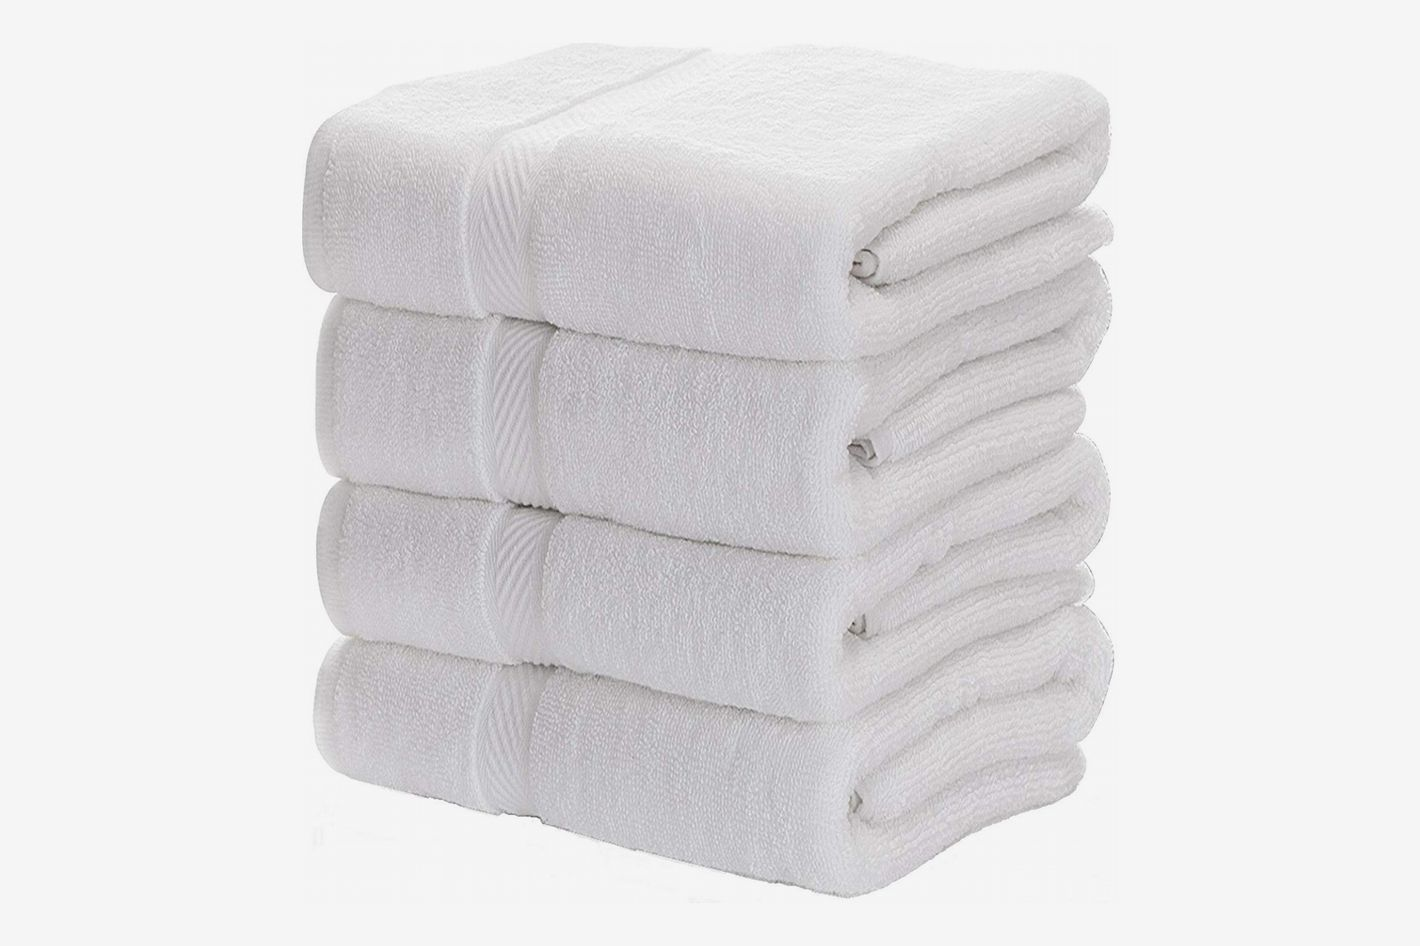 Luxury White Bath Towels (27 x 54 inches)